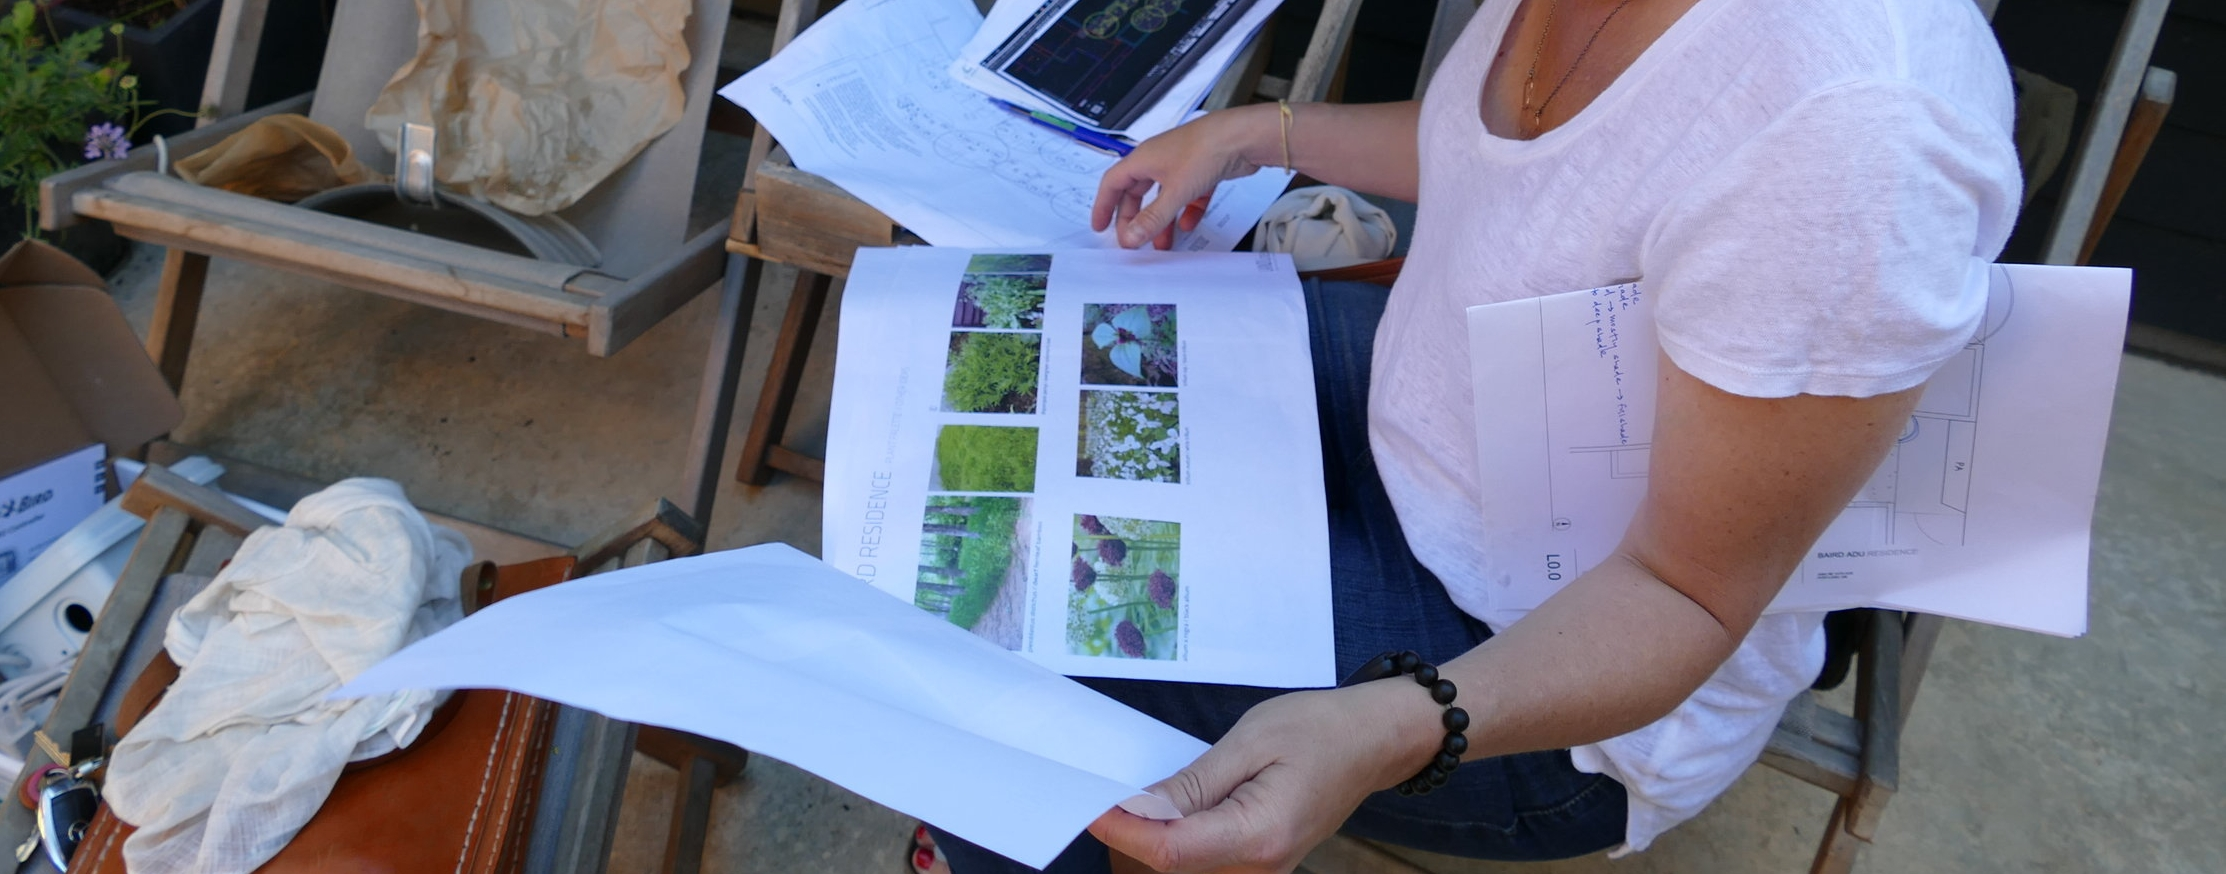 2017: Landscaping meeting V4.0. Once the layout had been settled upon, the landscape designers collaborated with Shannon to select a texture +tonal palette she found soothing.